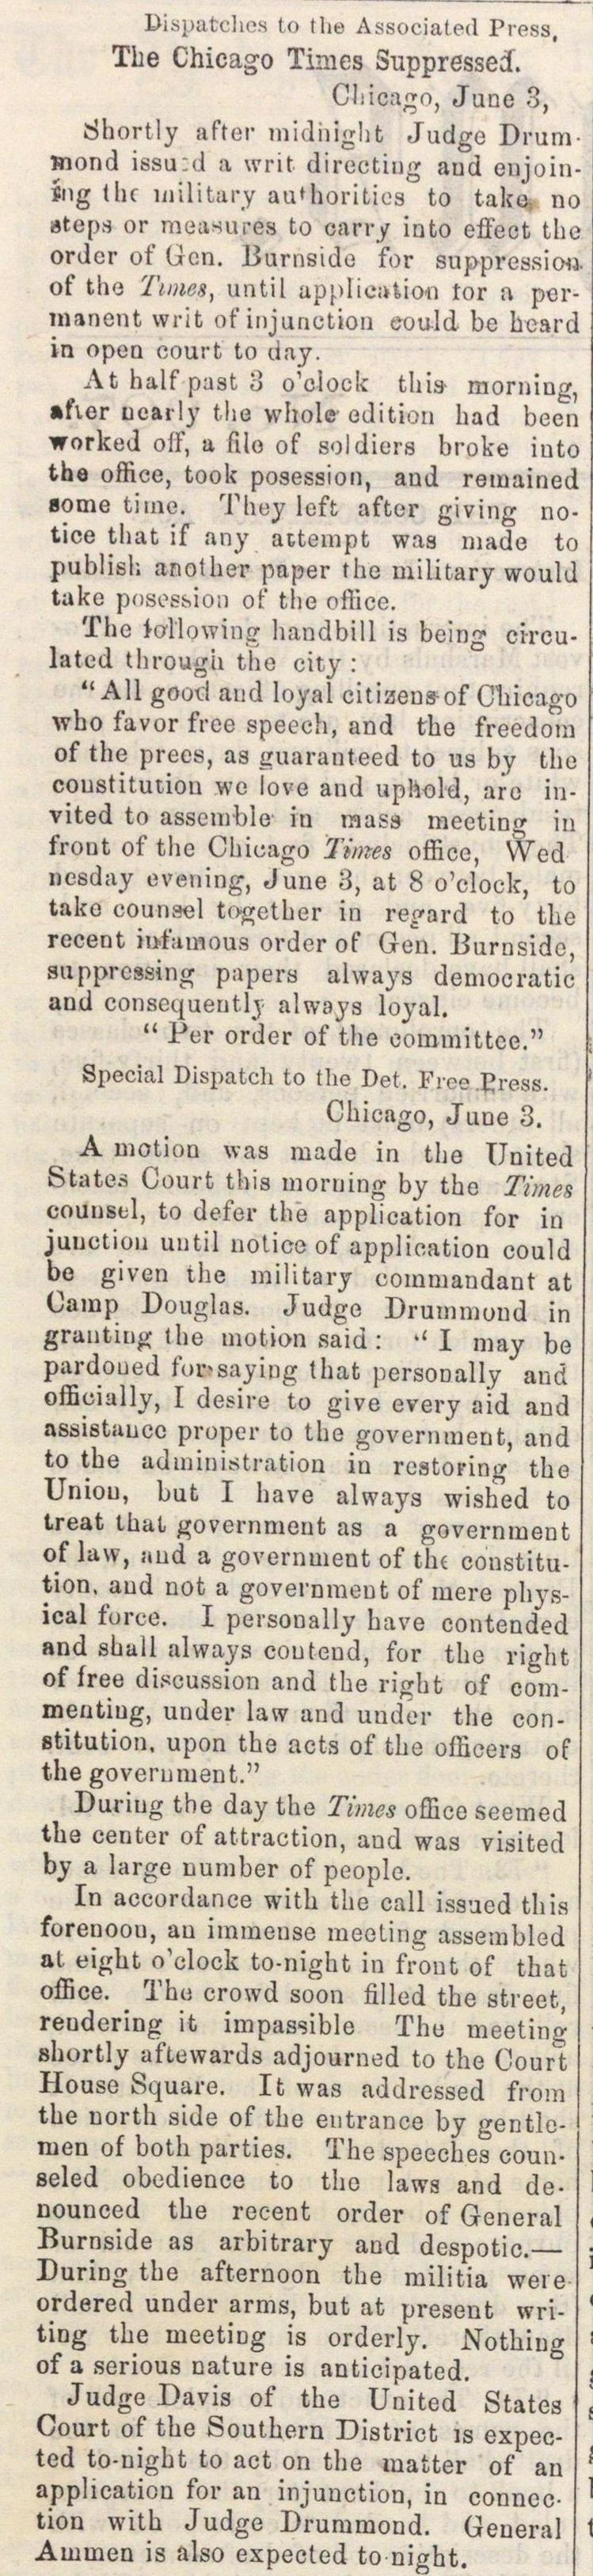 The Chicago Times Suppressed image